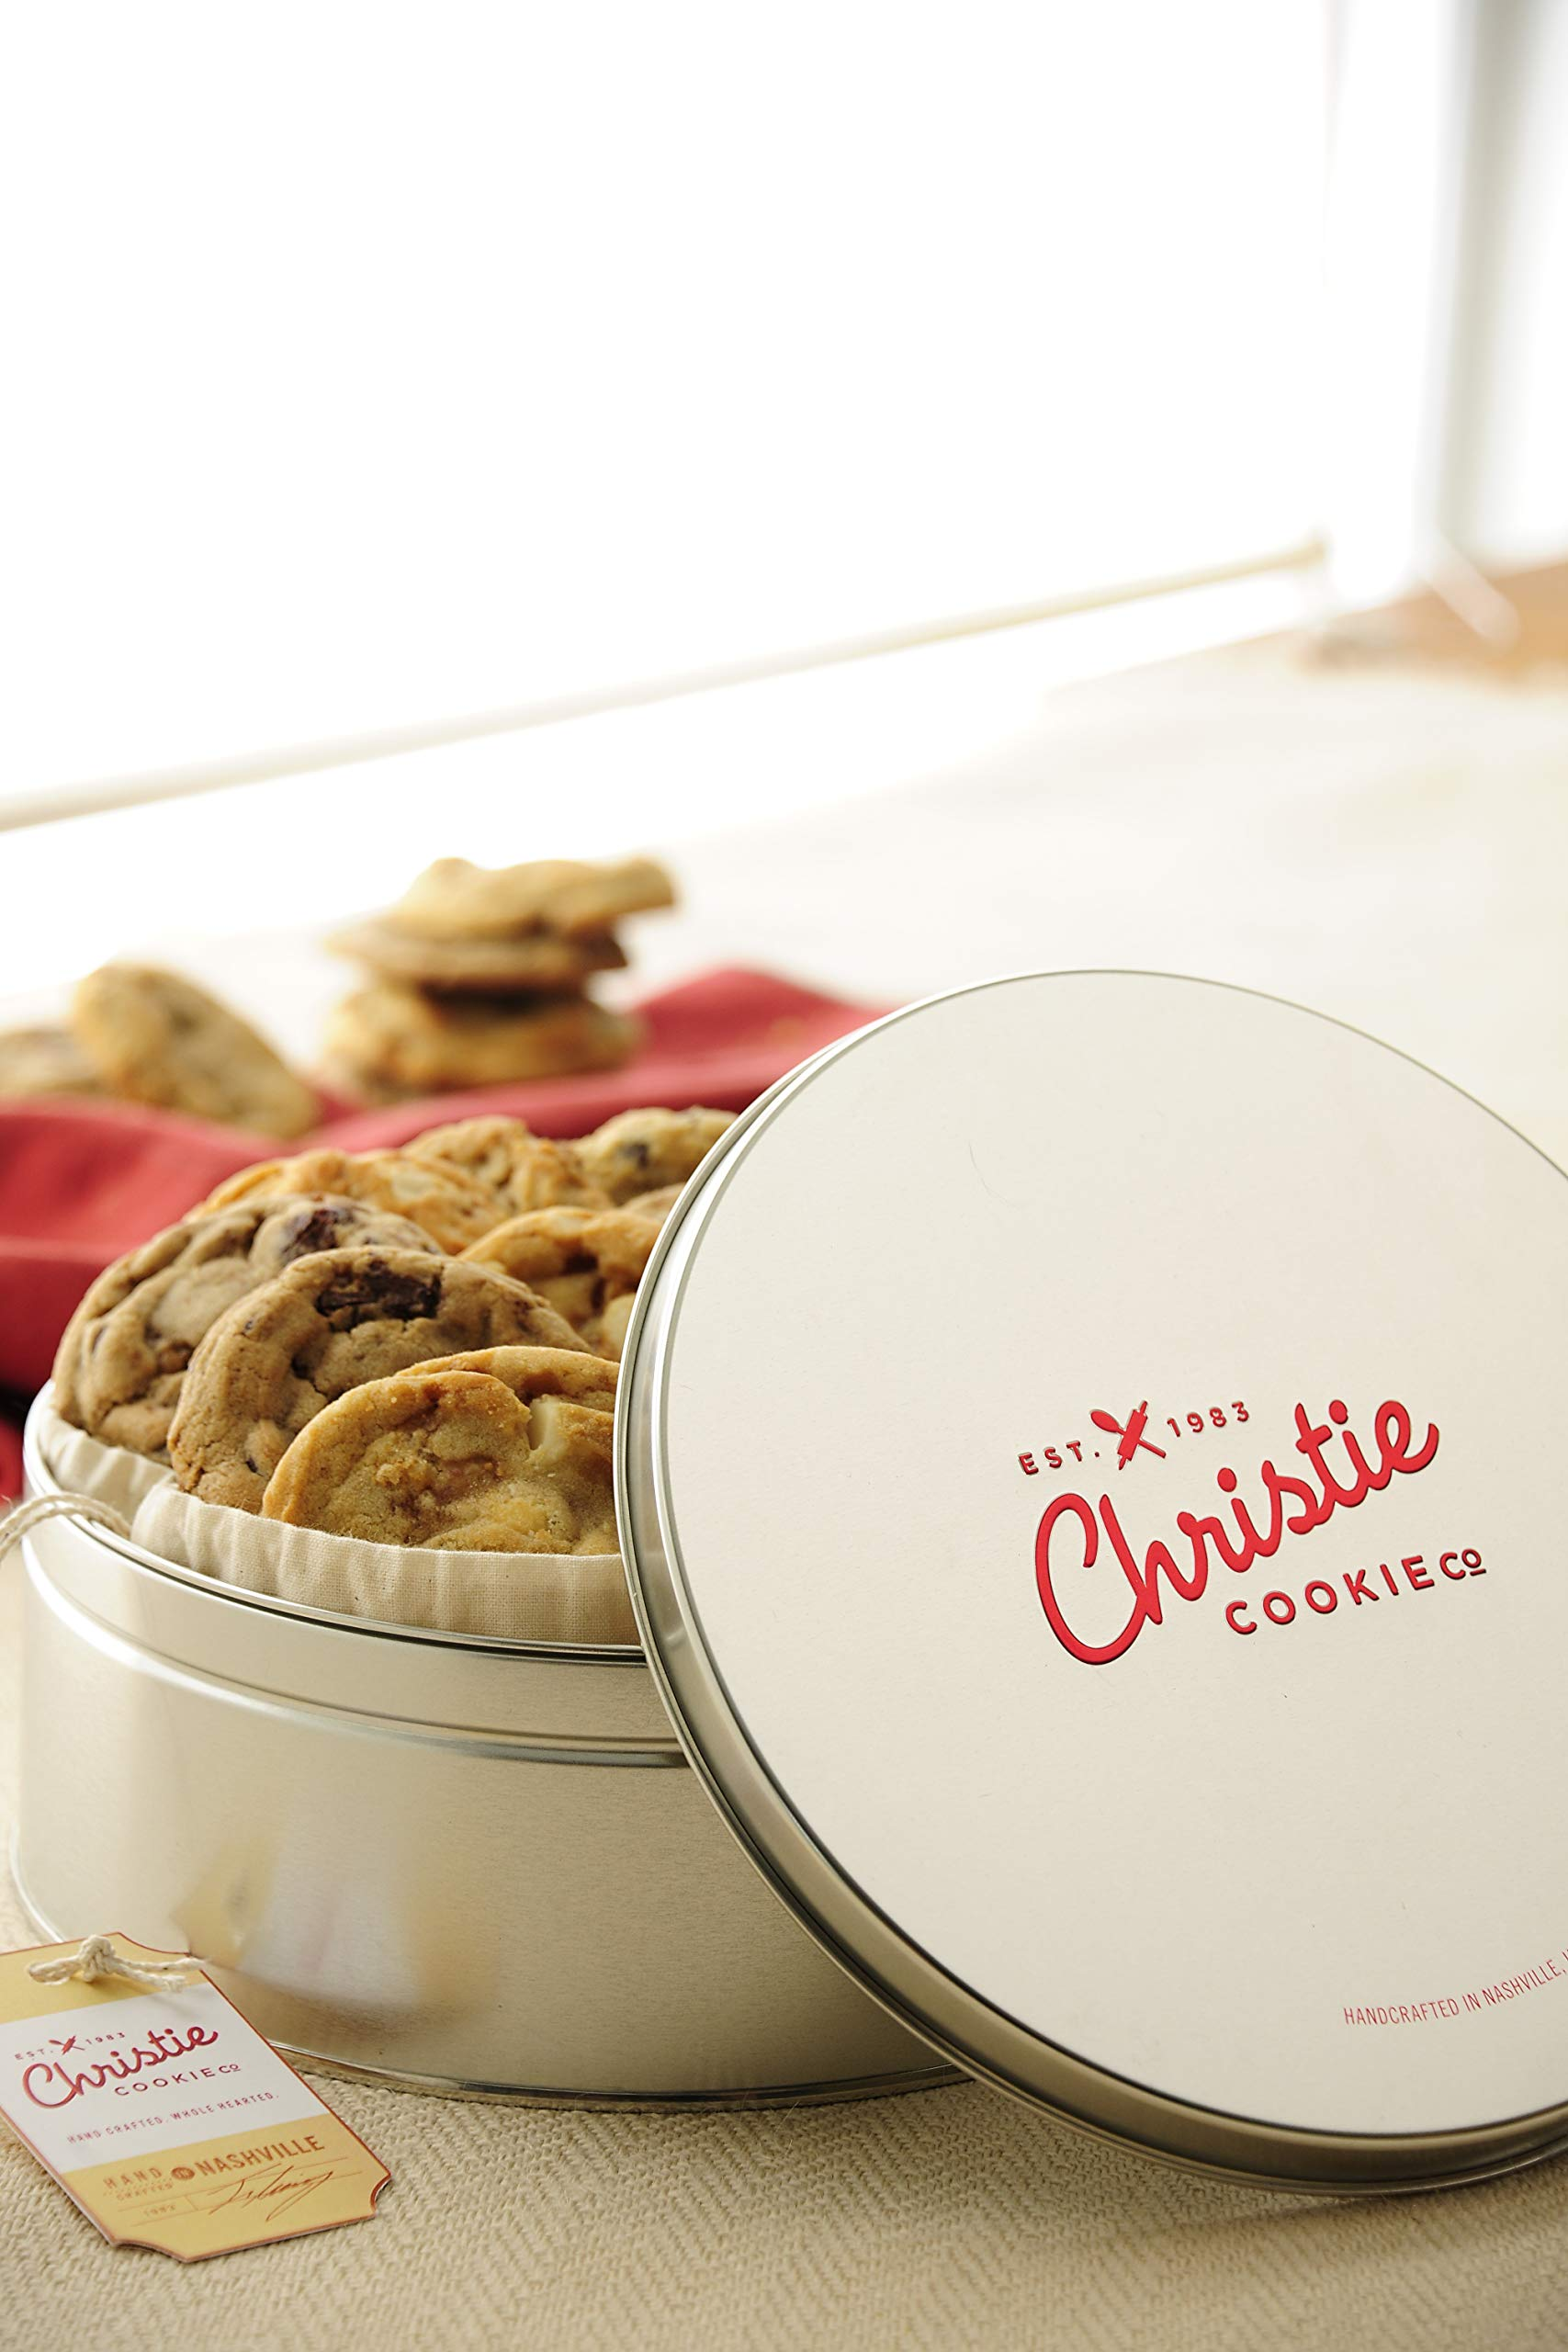 Christie Cookies, Gourmet Assorted Cookies, 18 Fresh-Baked Cookies in Silver Tin, No Added Preservatives, 100% Real Butter, Holiday & Corporate Gift Tin, Birthday Gift Idea for Men & Women